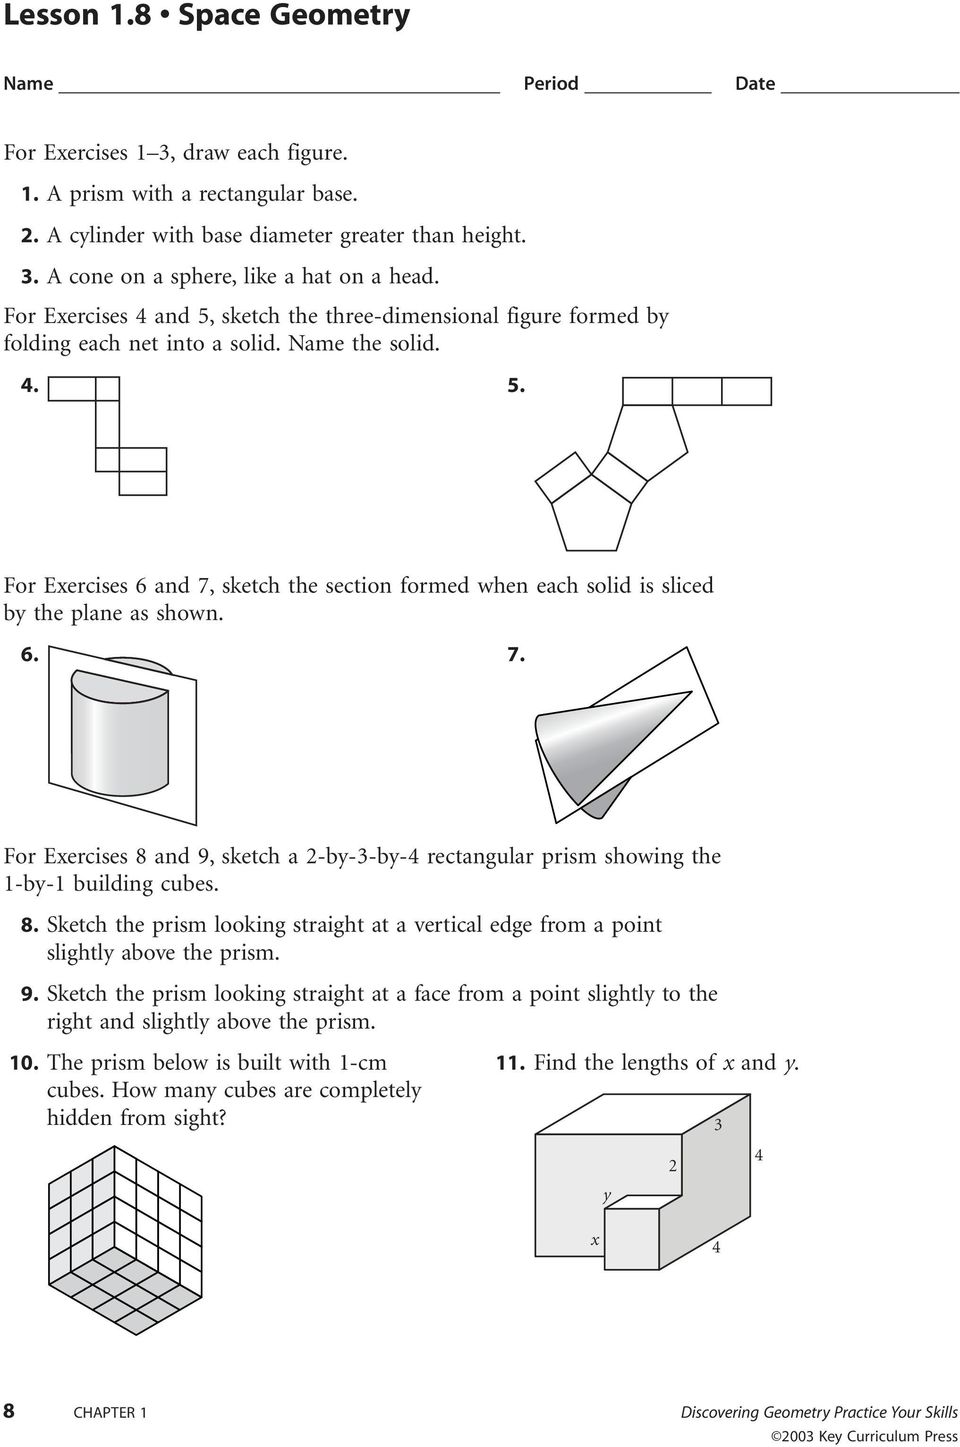 6. 7. For Exercises 8 and 9, sketch a 2-by-3-by-4 rectangular prism showing the 1-by-1 building cubes. 8. Sketch the prism looking straight at a vertical edge from a point slightly above the prism. 9. Sketch the prism looking straight at a face from a point slightly to the right and slightly above the prism.